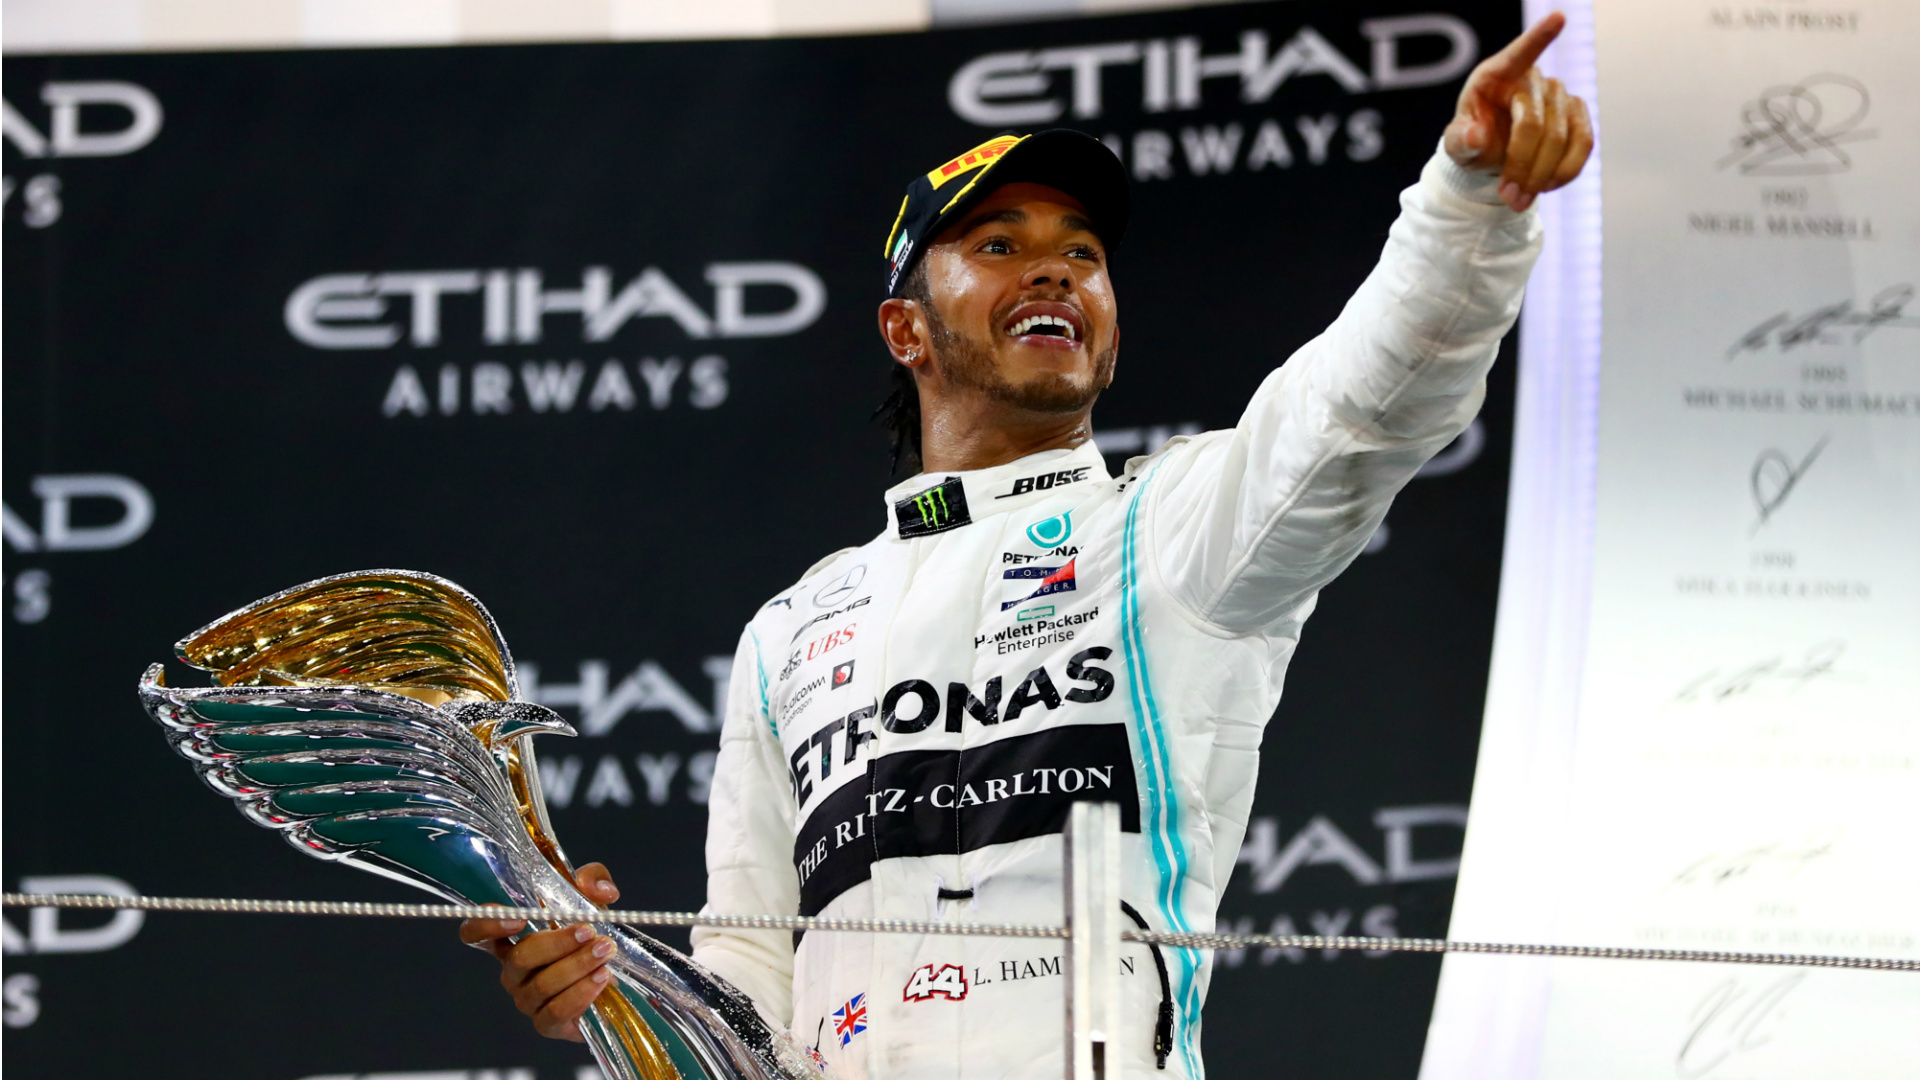 Hamilton to equal Schumacher? No reason to doubt it, says Coulthard